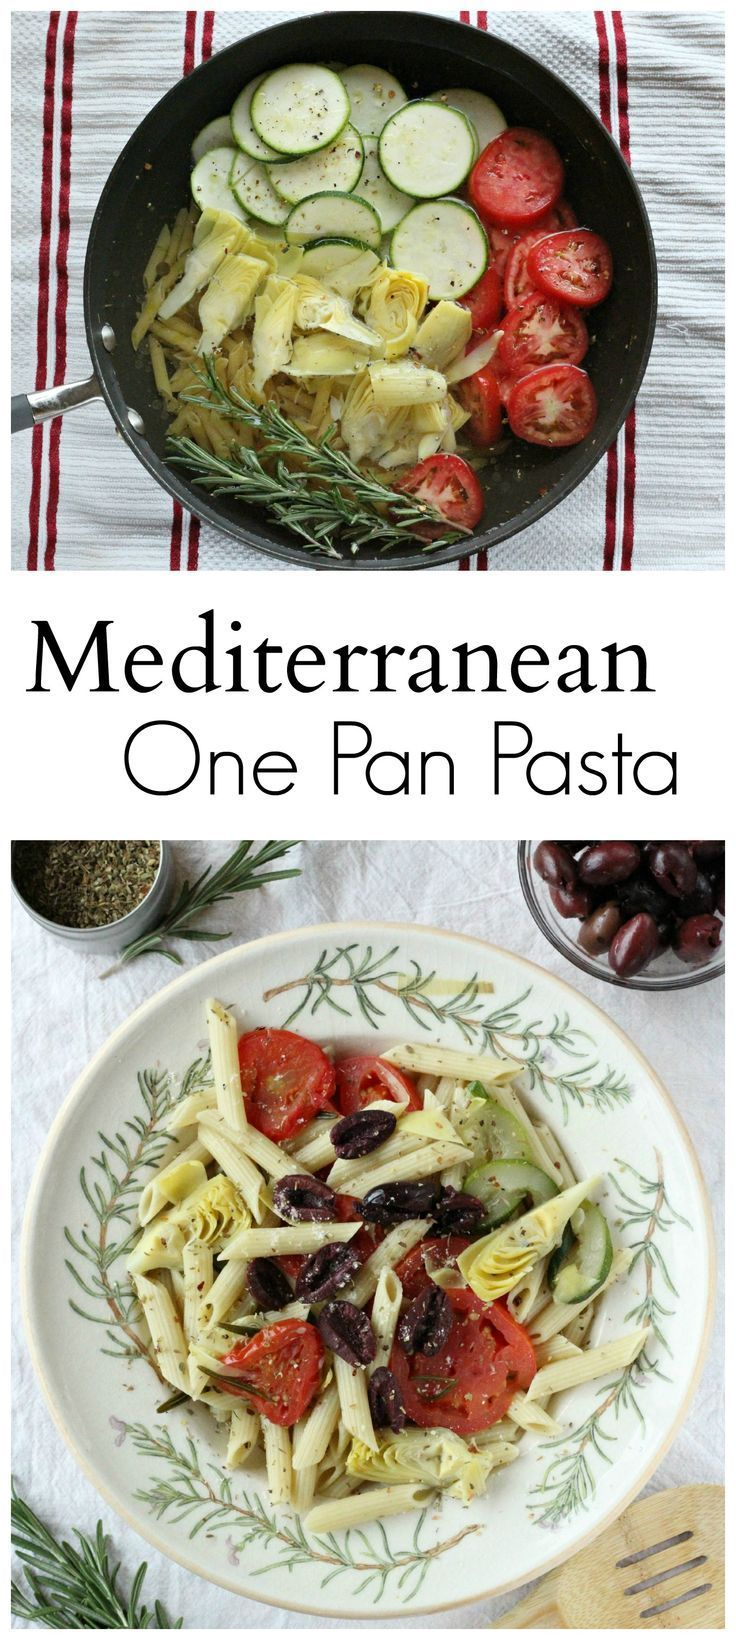 98 best greek food recipes images on pinterest greek recipes msg 4 21 mediterranean one pan pasta dish featuring zucchini tomatoes artichokes forumfinder Choice Image